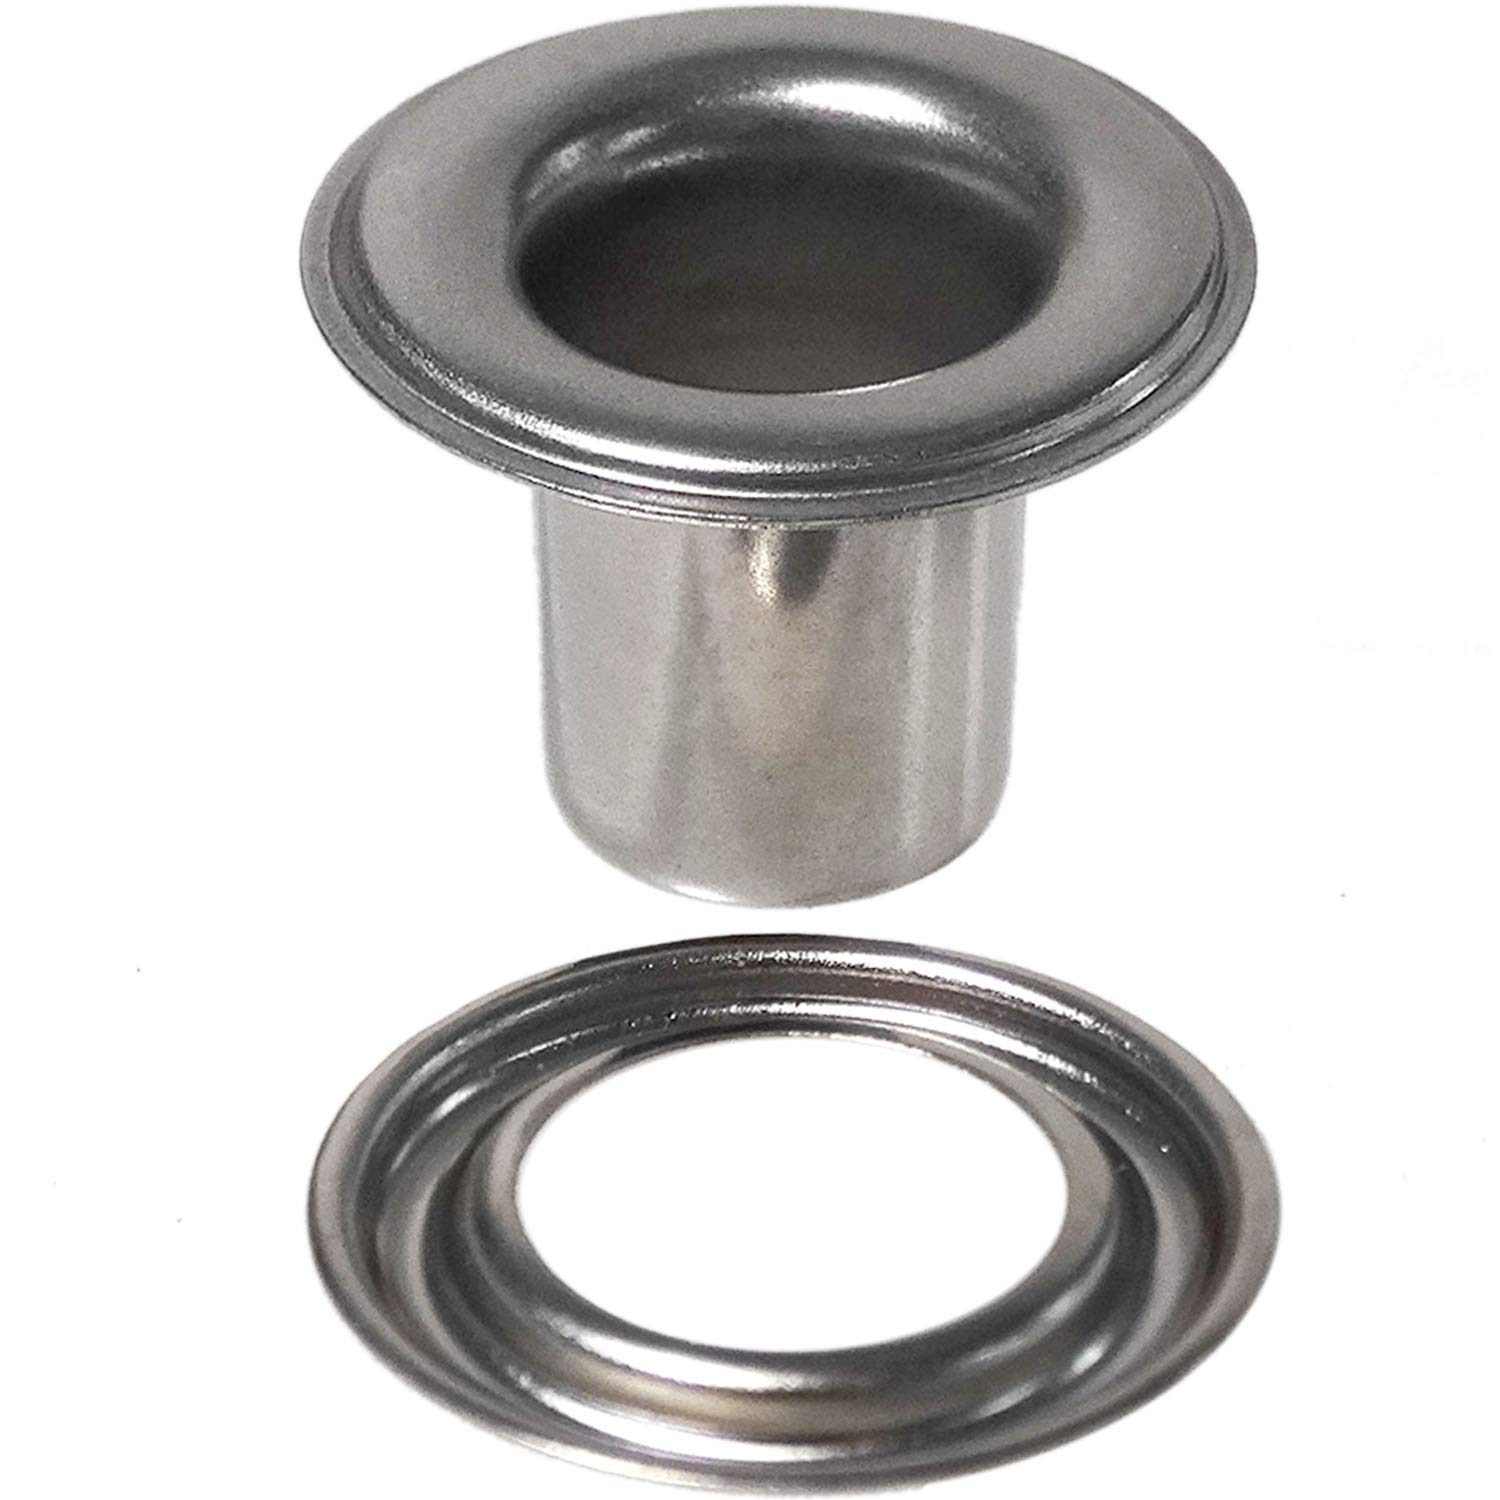 Stimpson Self-Piercing Grommet and Washer Stainless Steel 304 Reliable, Durable, Heavy-Duty #2XL Set (500 pieces of each)